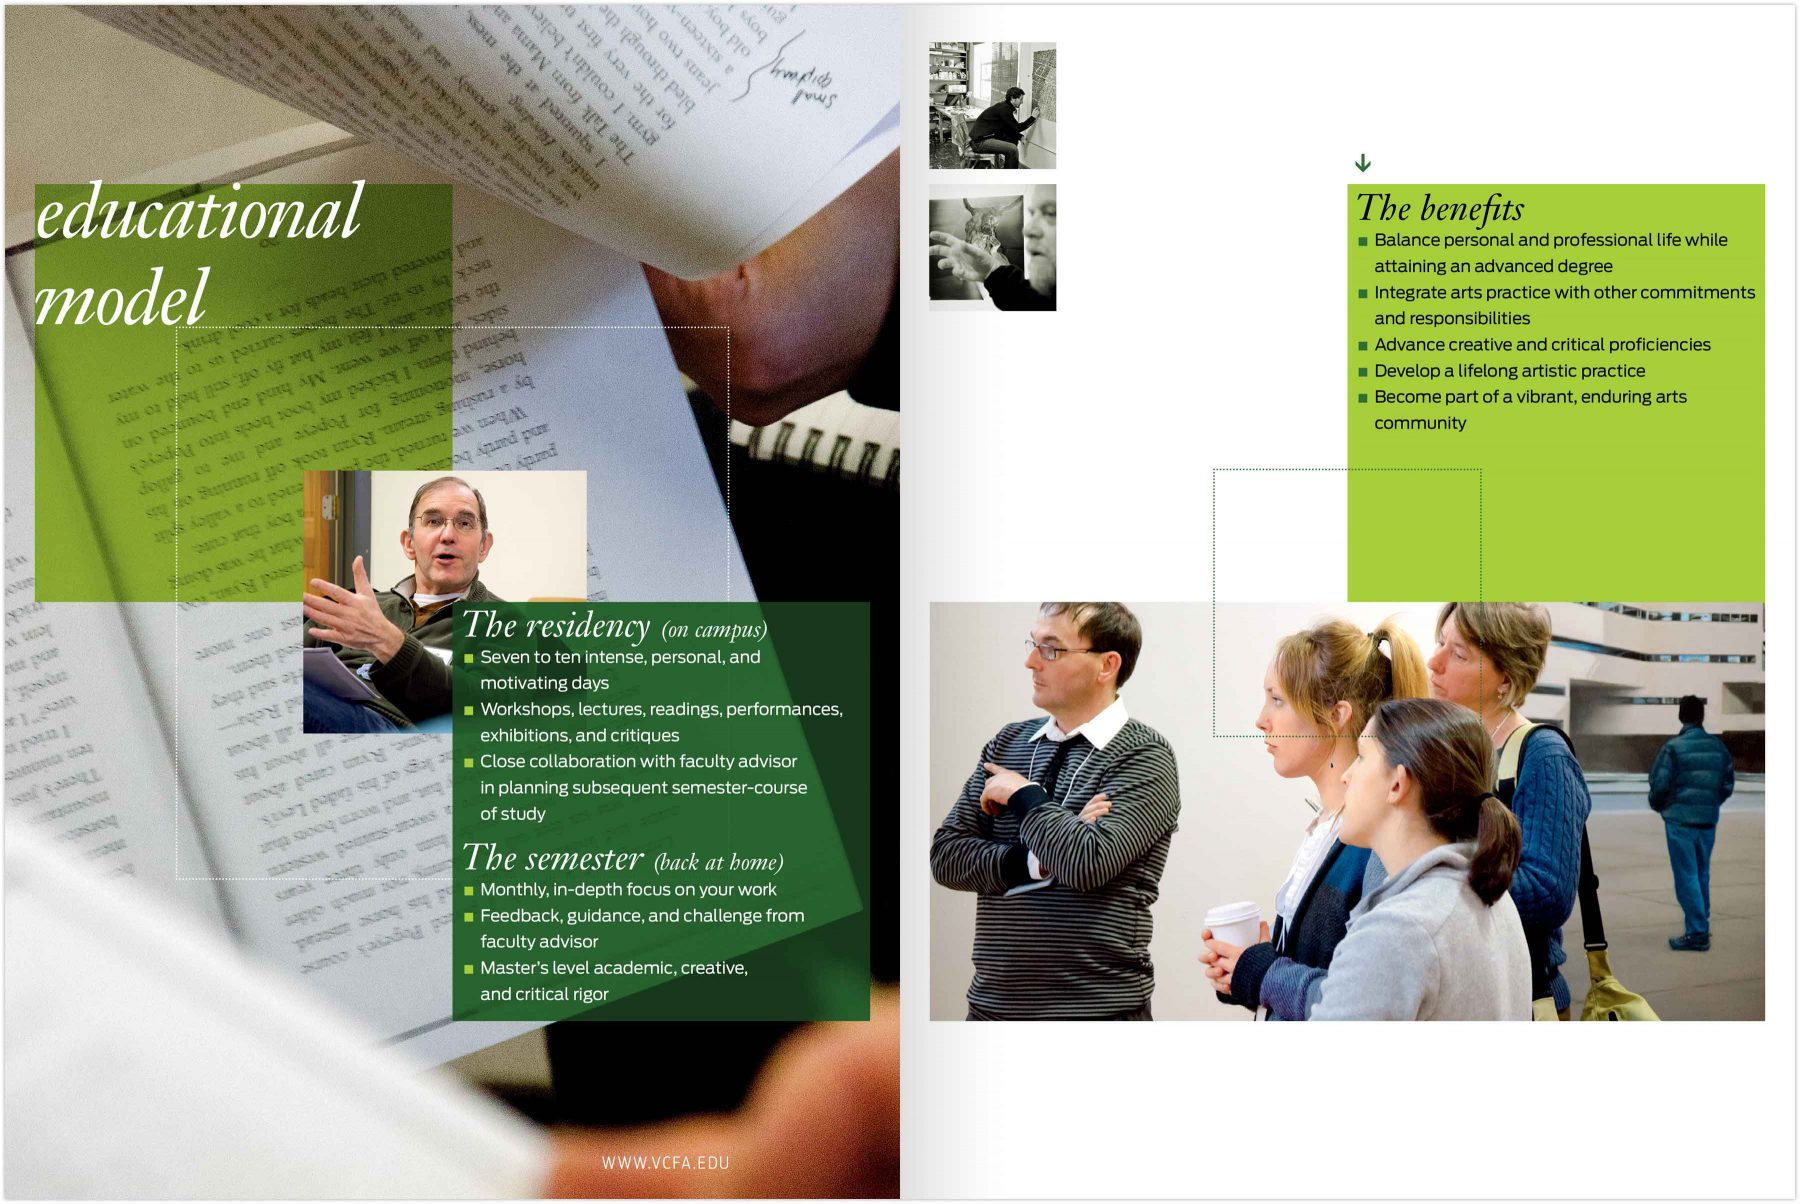 Viewbook spread: Educational model